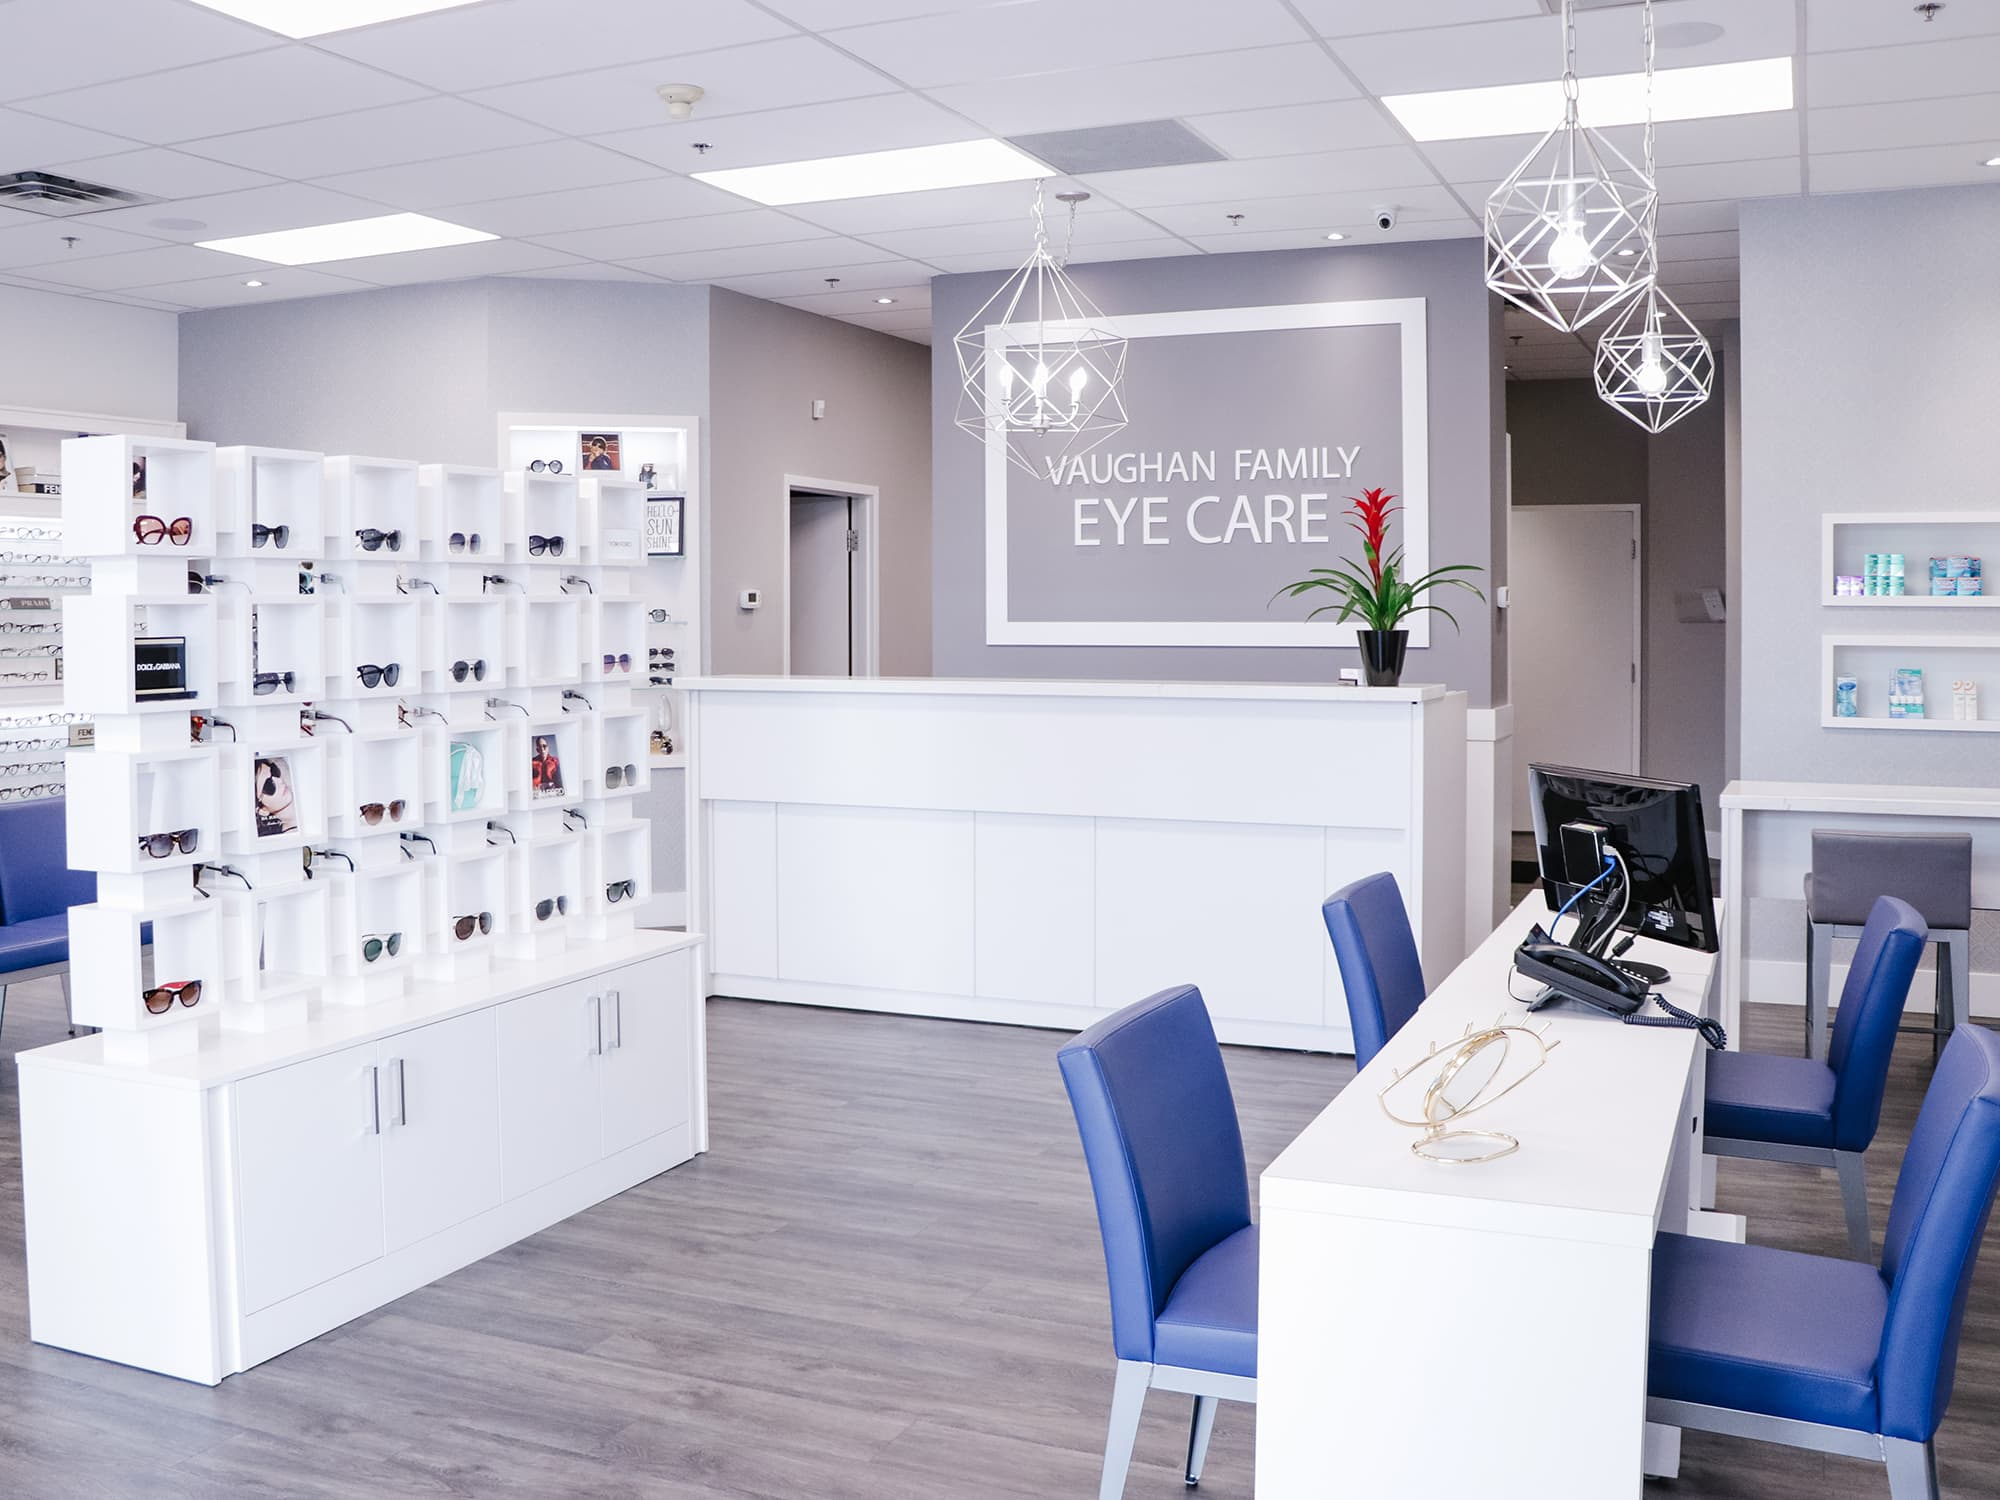 vaughan-family-eye-care